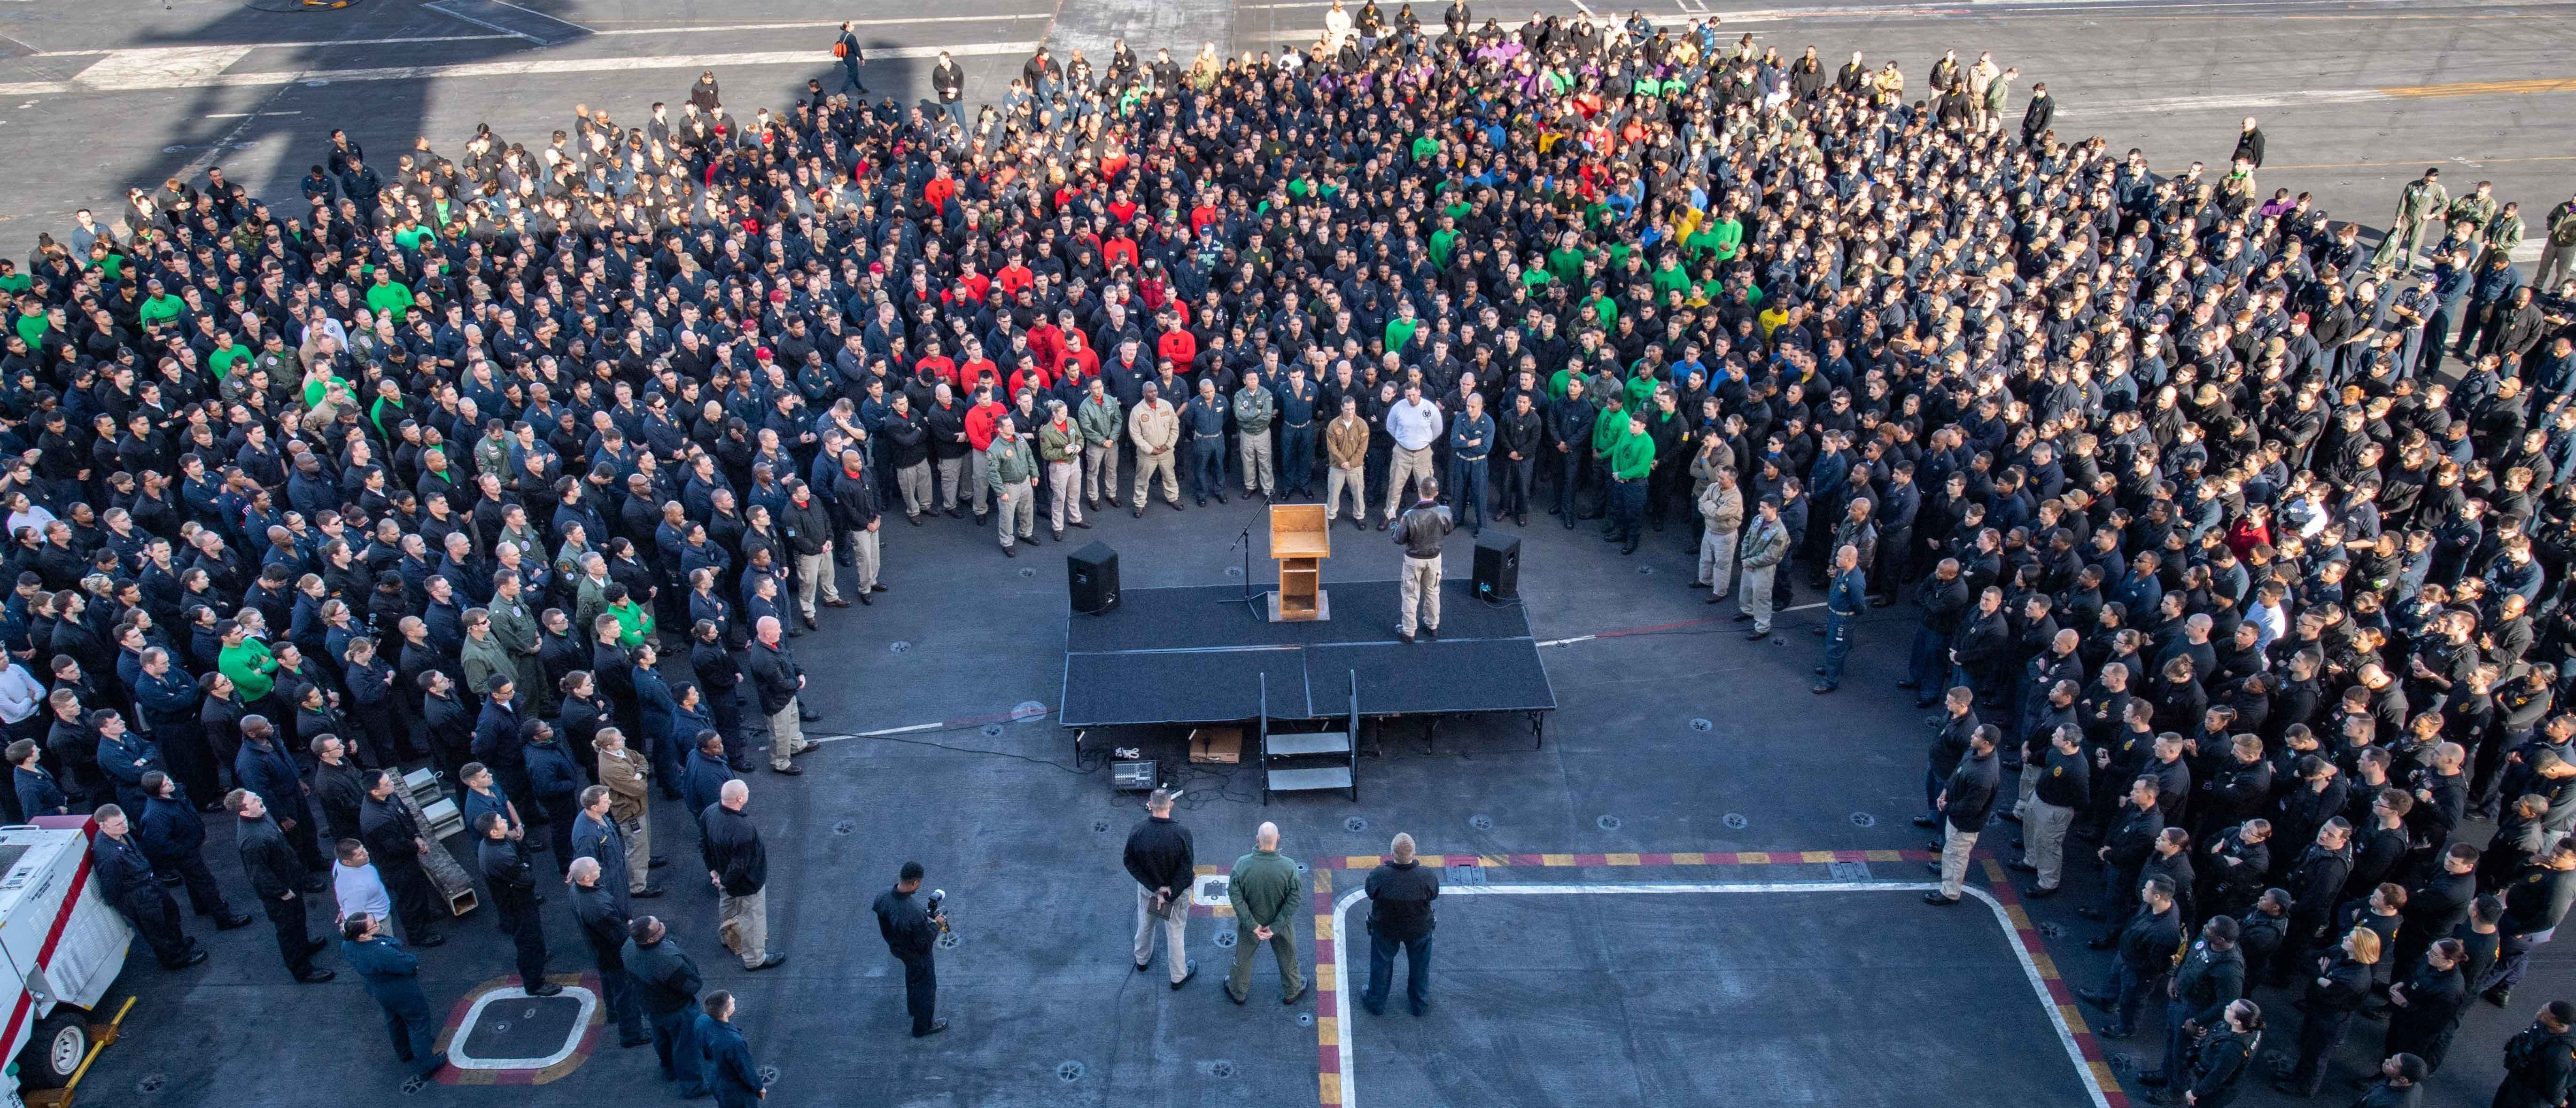 PACIFIC OCEAN - DECEMBER 15: In this handout released by the U.S. Navy, Capt. Brett Crozier, commanding officer of the aircraft carrier USS Theodore Roosevelt (CVN 71), addresses the crew during an all hands call on the ships flight deck Dec. 15, 2019. Theodore Roosevelt is currently underway conducting routine training in the Eastern Pacific Ocean. (Photo by U.S. Navy via Getty Images)